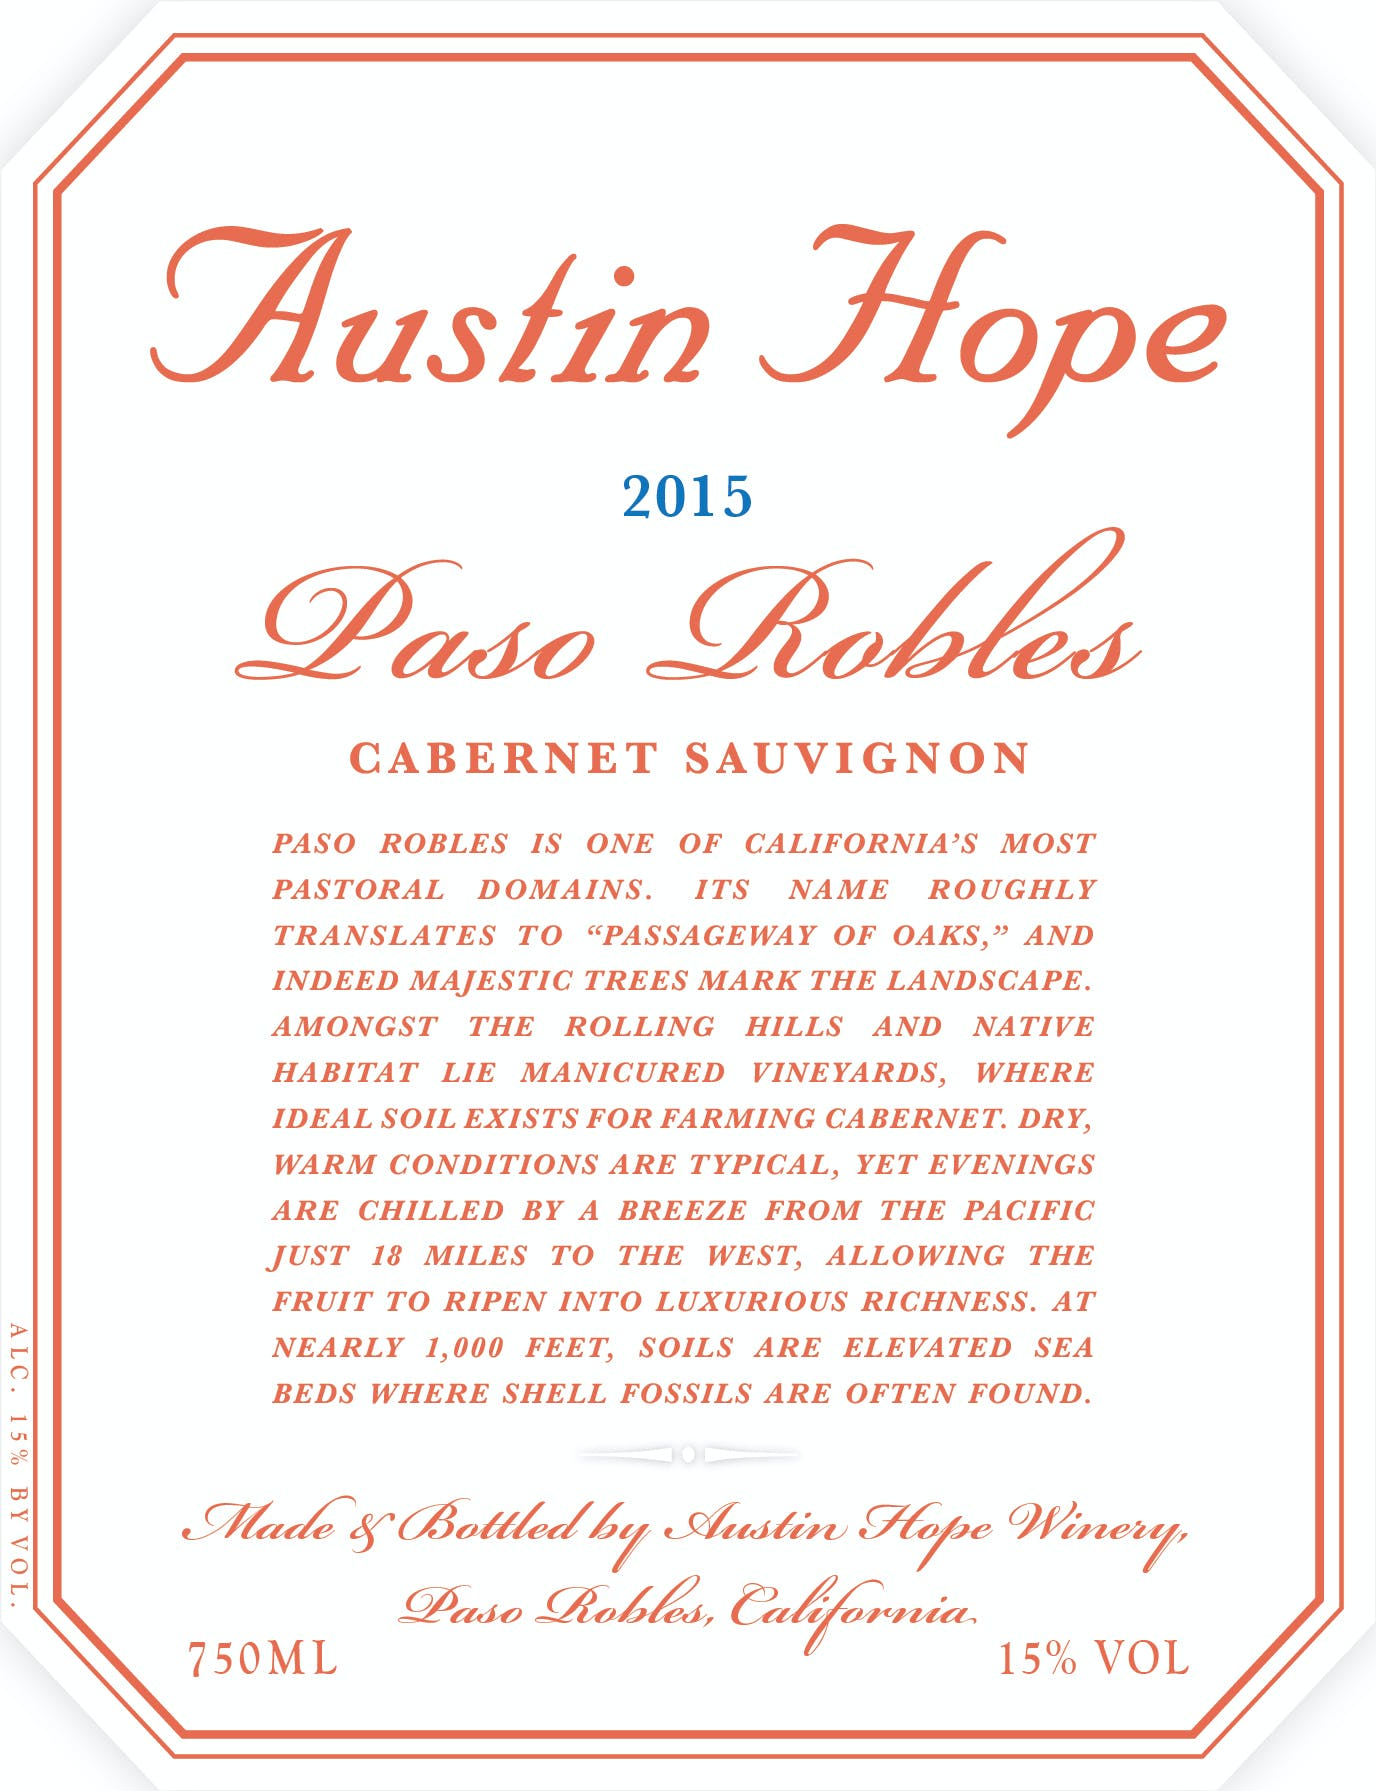 Austin Hope Cabernet Sauvignon 2015 - Canal's of Berlin